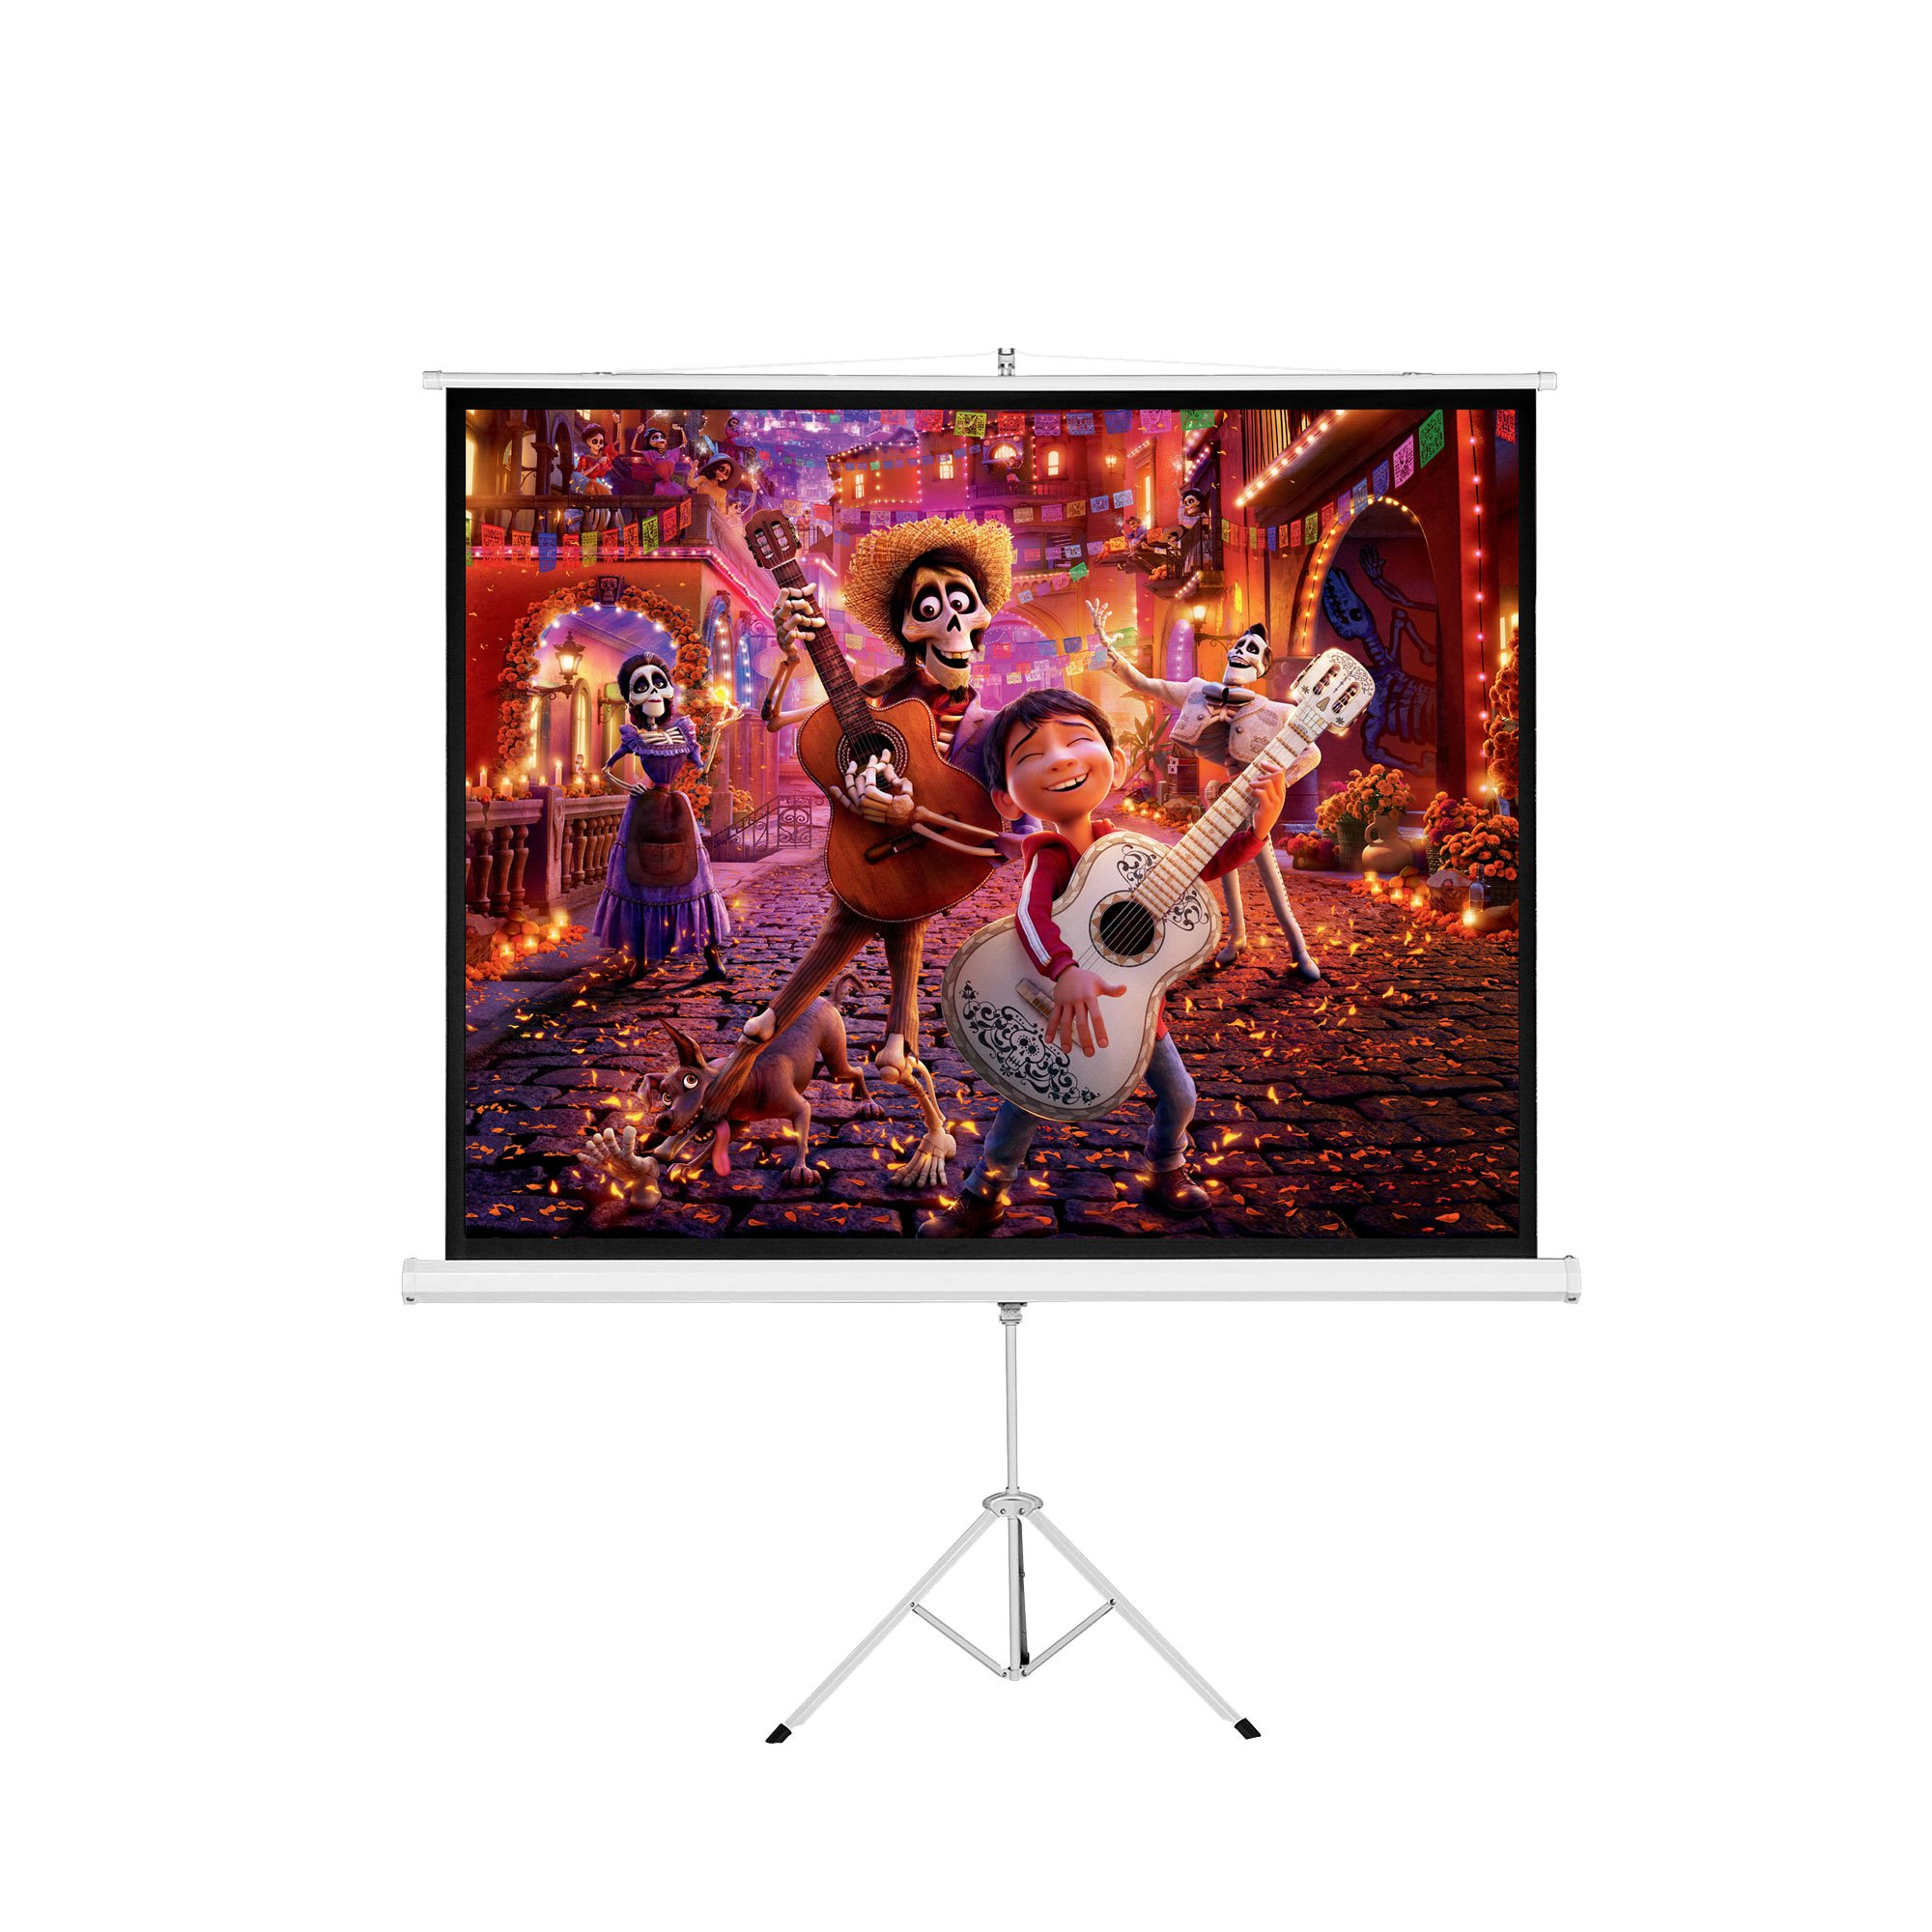 Cloud Mountain 120'' 4:3 Pull Up Tripod Projection Screen Portable Projector Projection Screen Matte White by Cloud Mountain